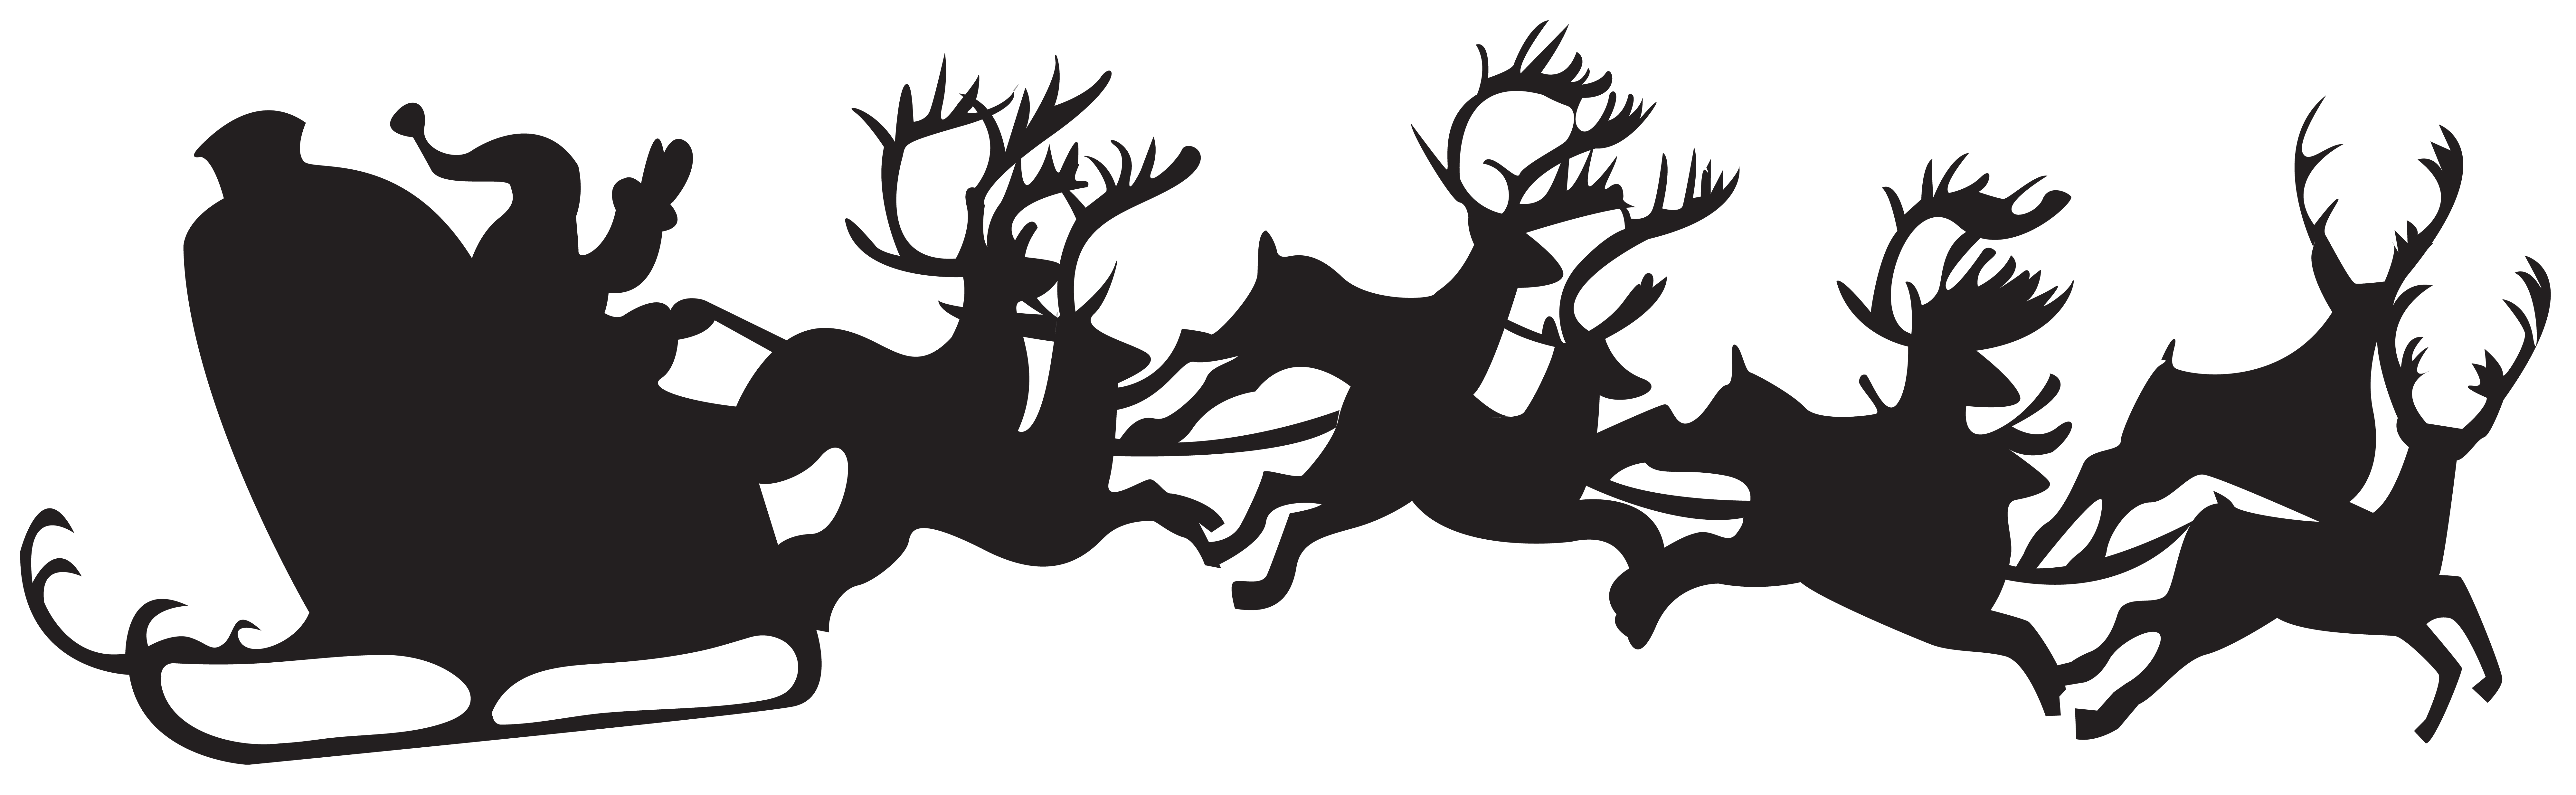 Christmas clipart silhouette. Santa claus with sleigh